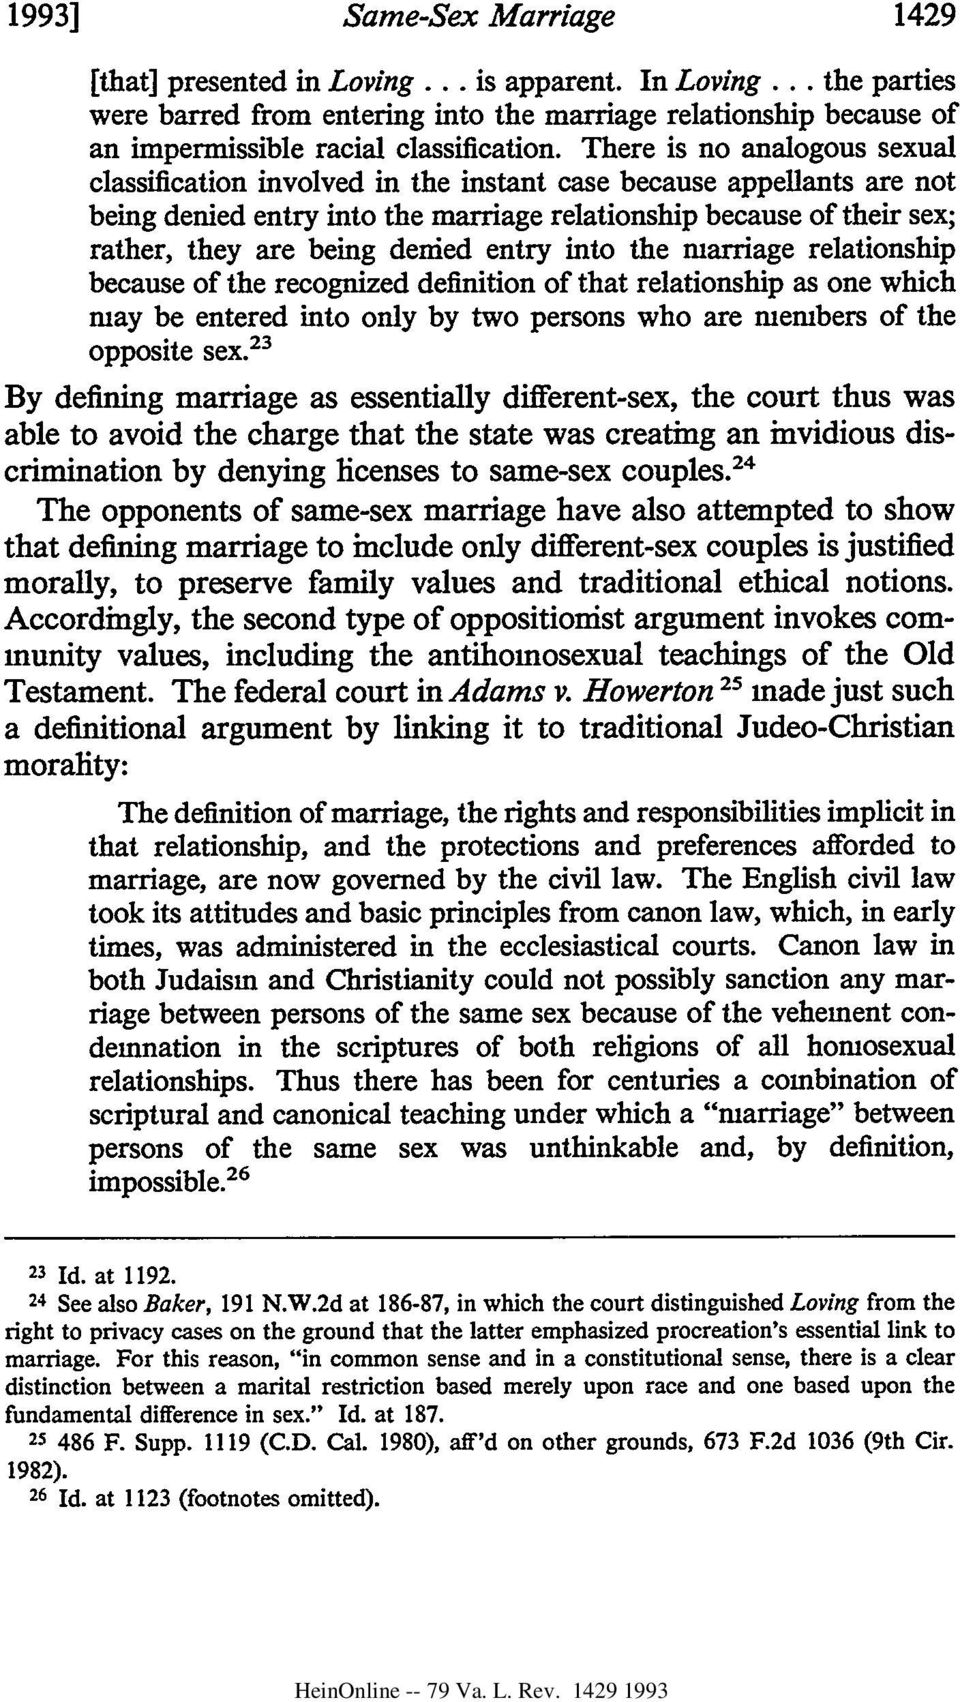 There is no analogous sexual classification involved in the instant case because appellants are not being denied entry into the marriage relationship because of their sex; rather, they are being